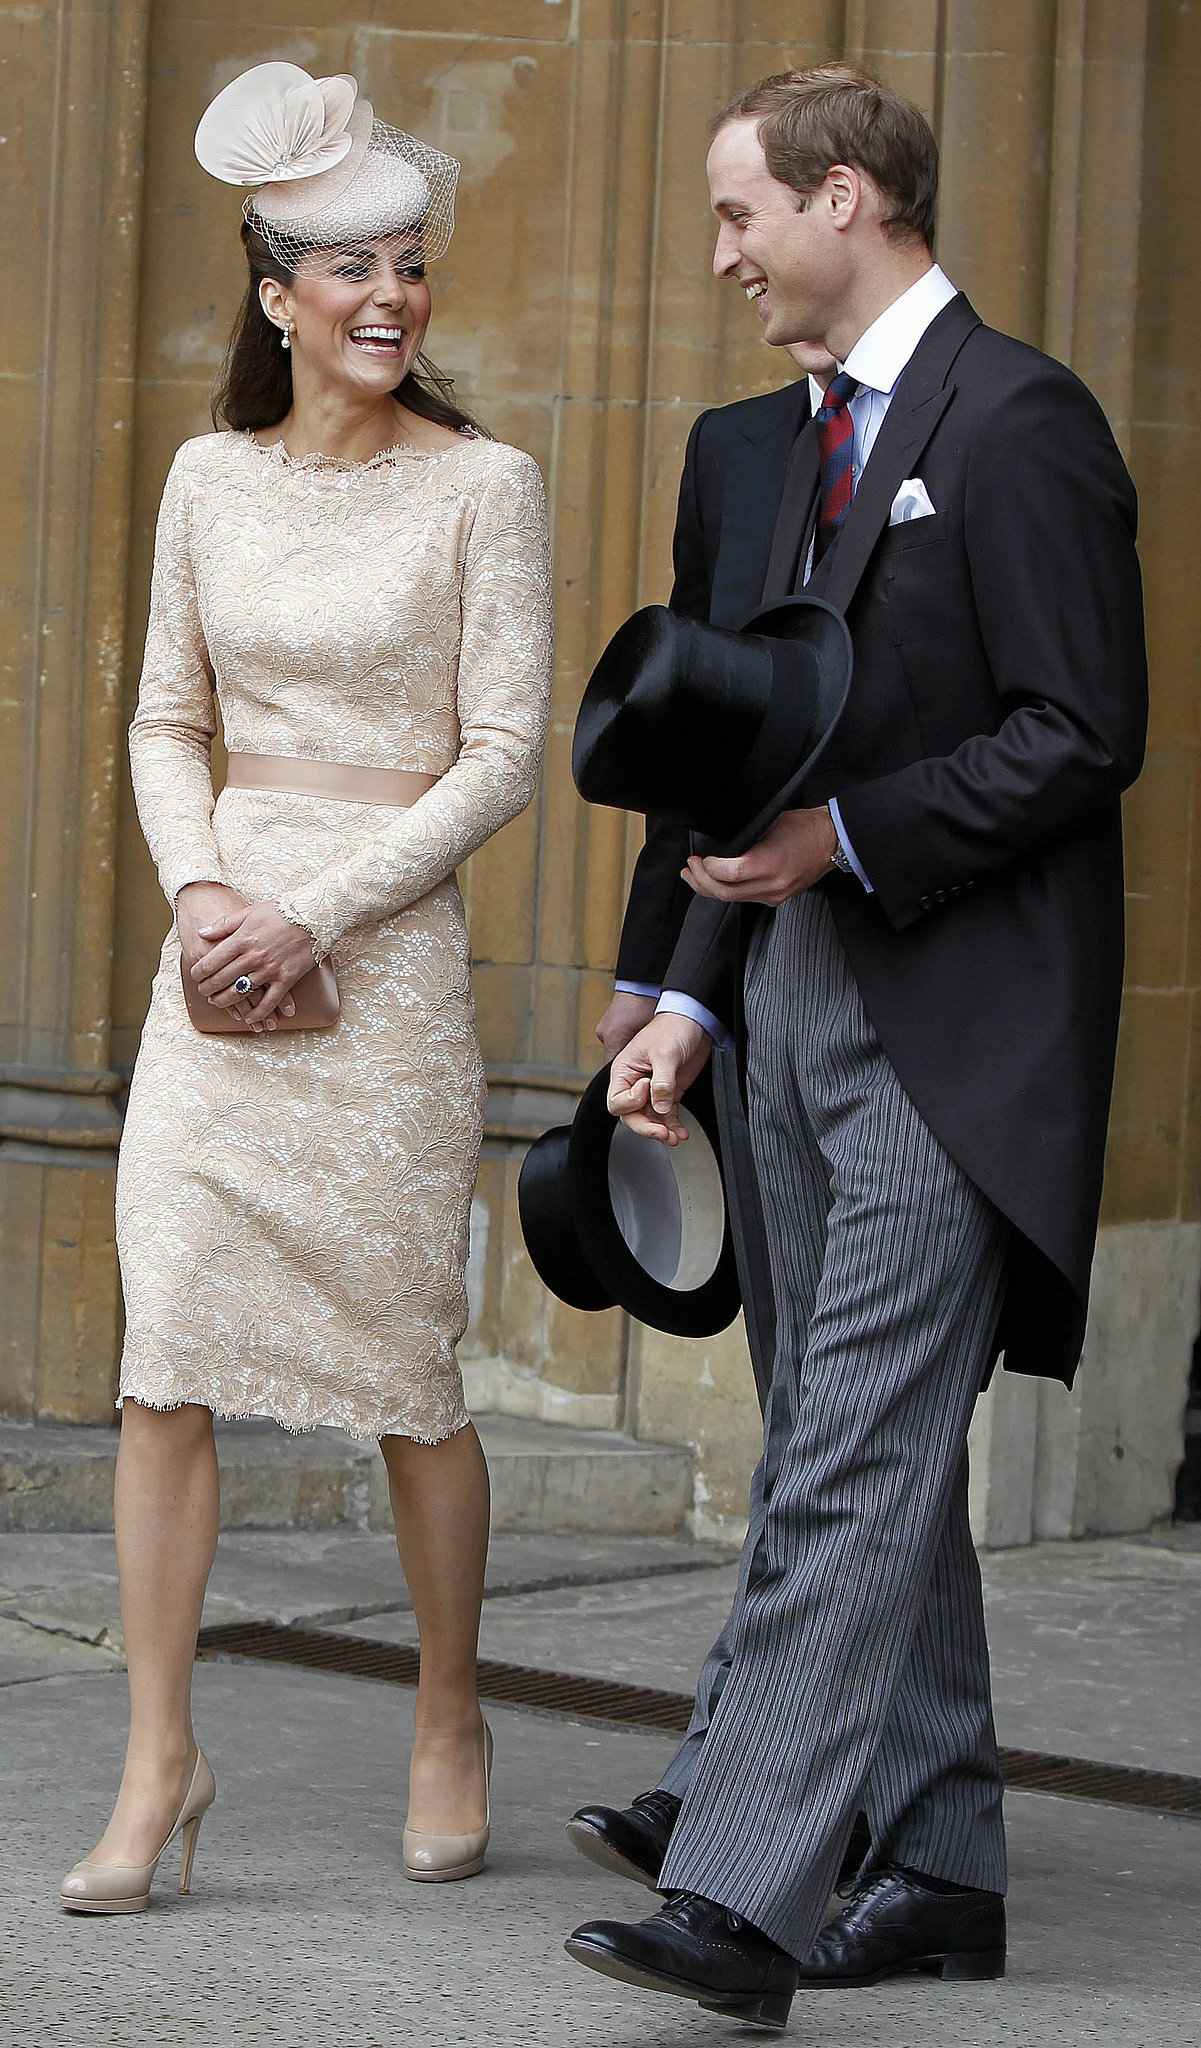 Kate laughed with Prince William during a June 2012 Diamond Jubilee event in London.